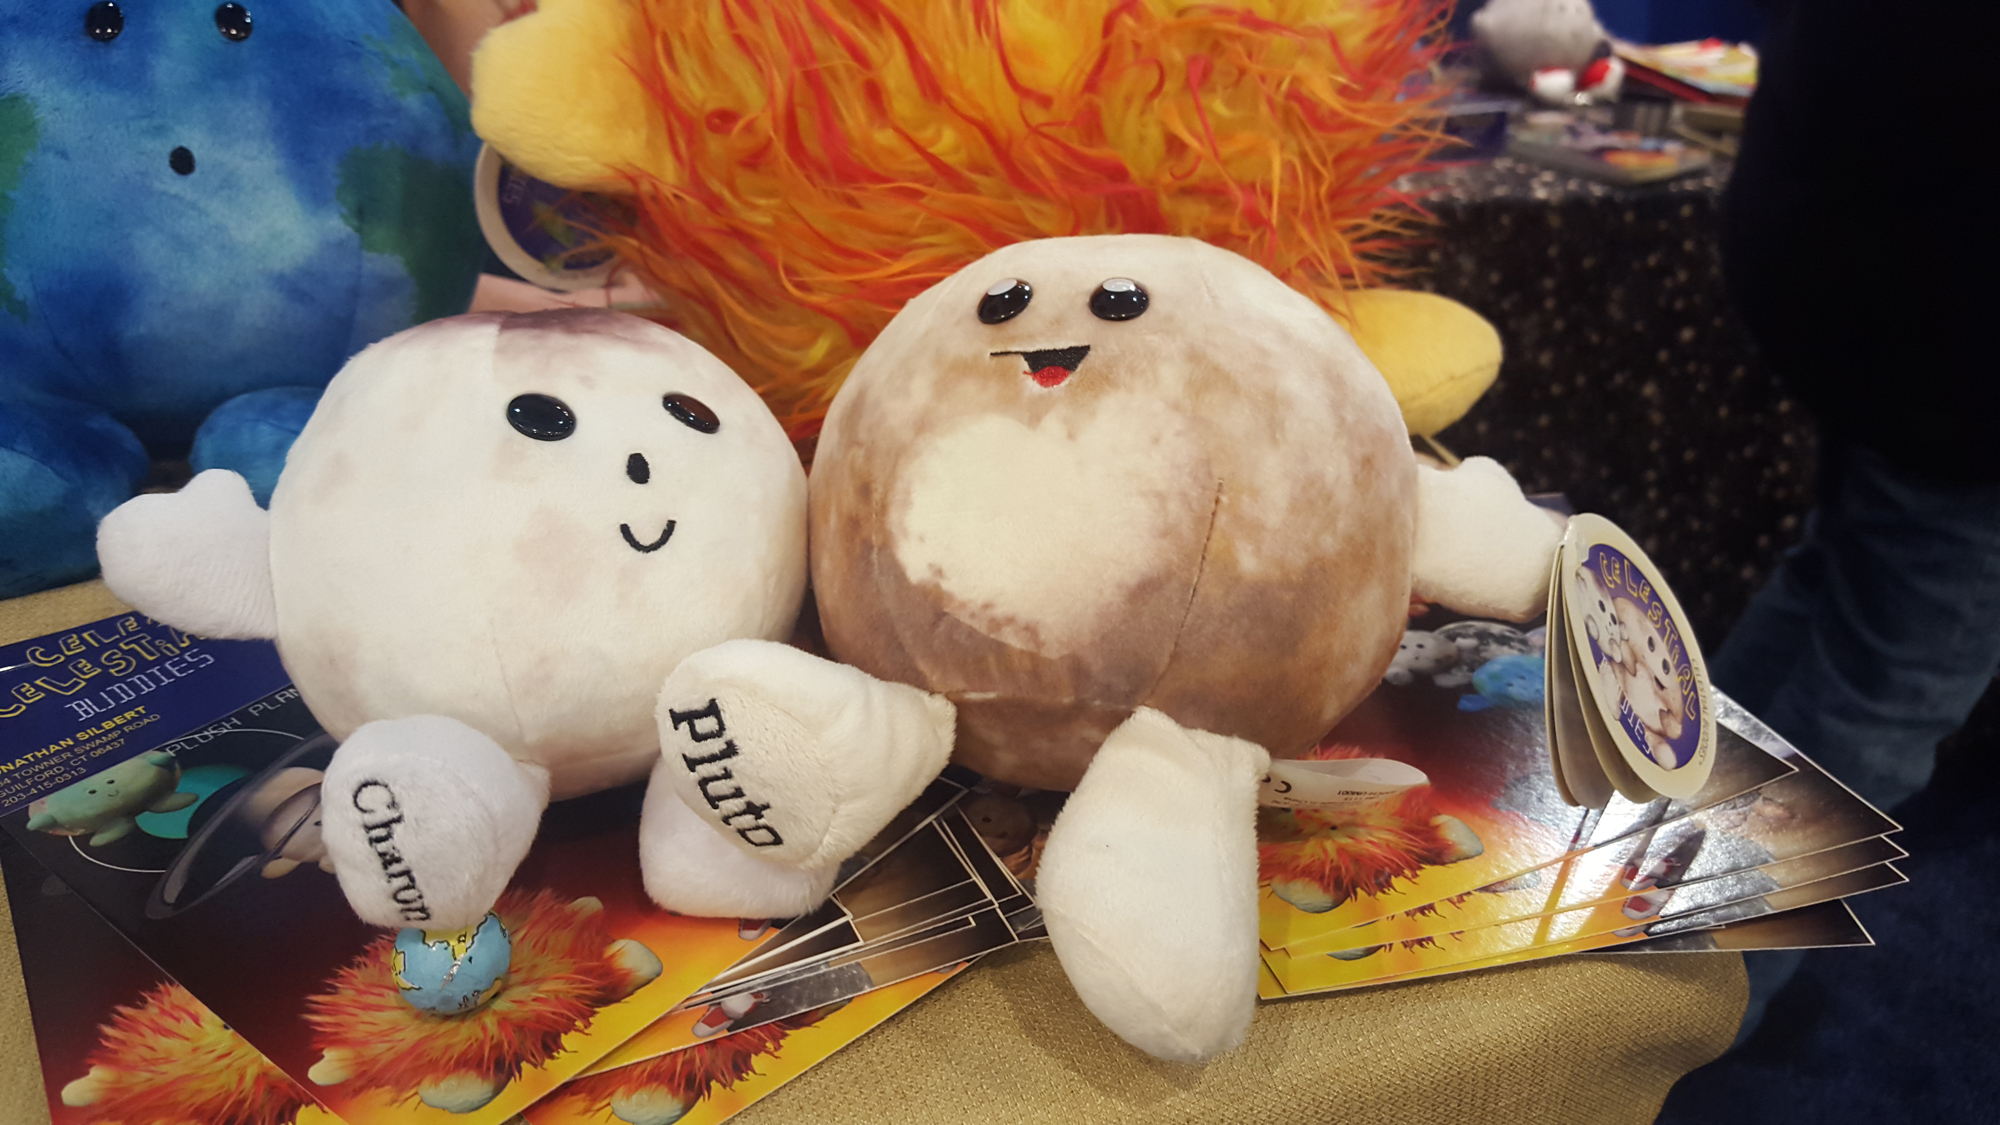 Celestial Buddies' Pluto and Charon May Be the Cutest Space Toys Ever